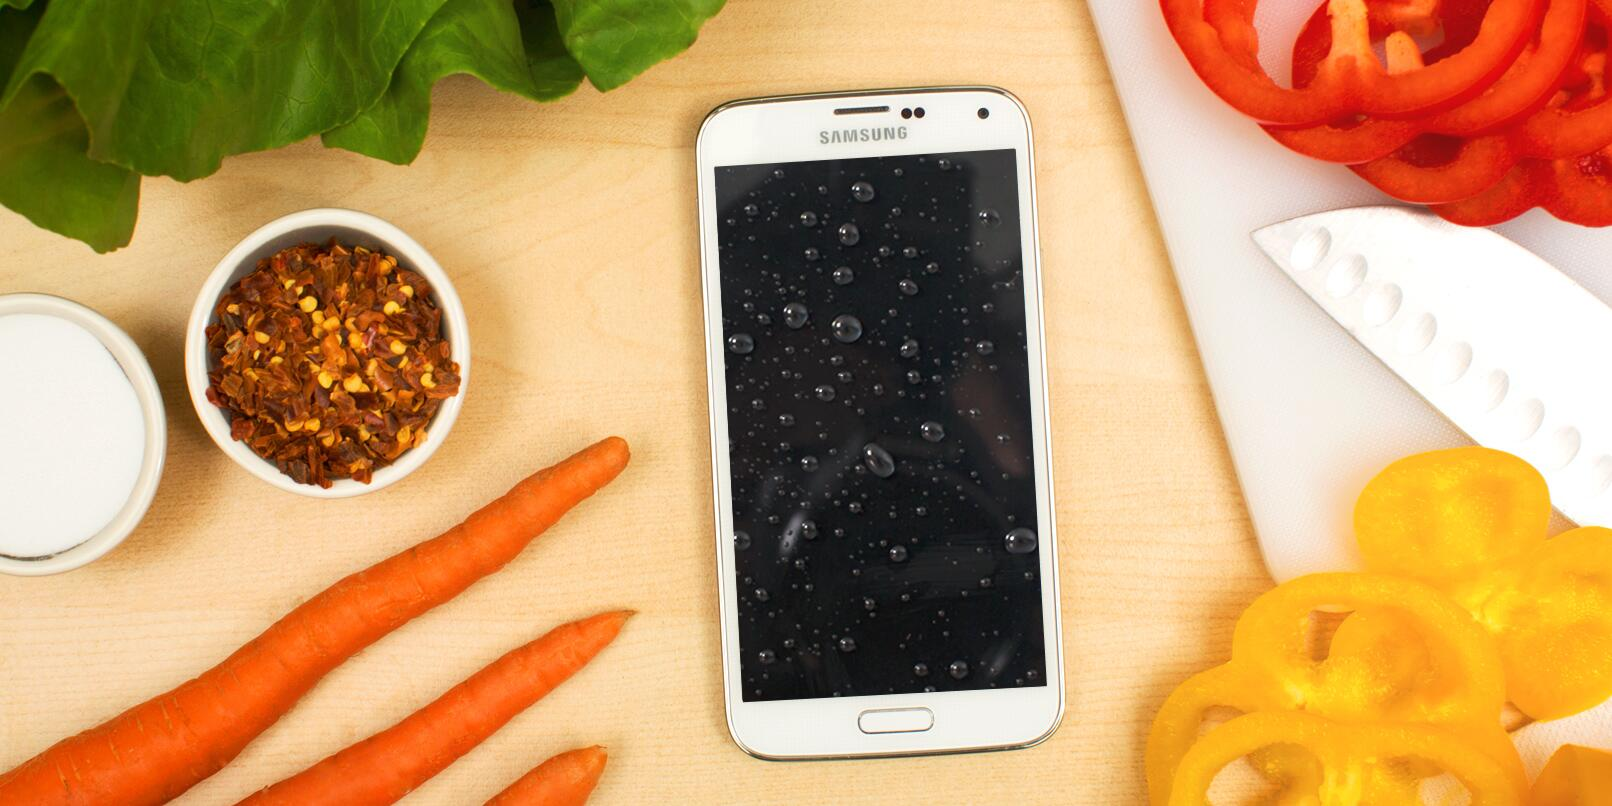 Being able to use your phone in the kitchen without fear. That's a recipe for happy living. #GALAXYS5 http://t.co/TcrlDTLF8g